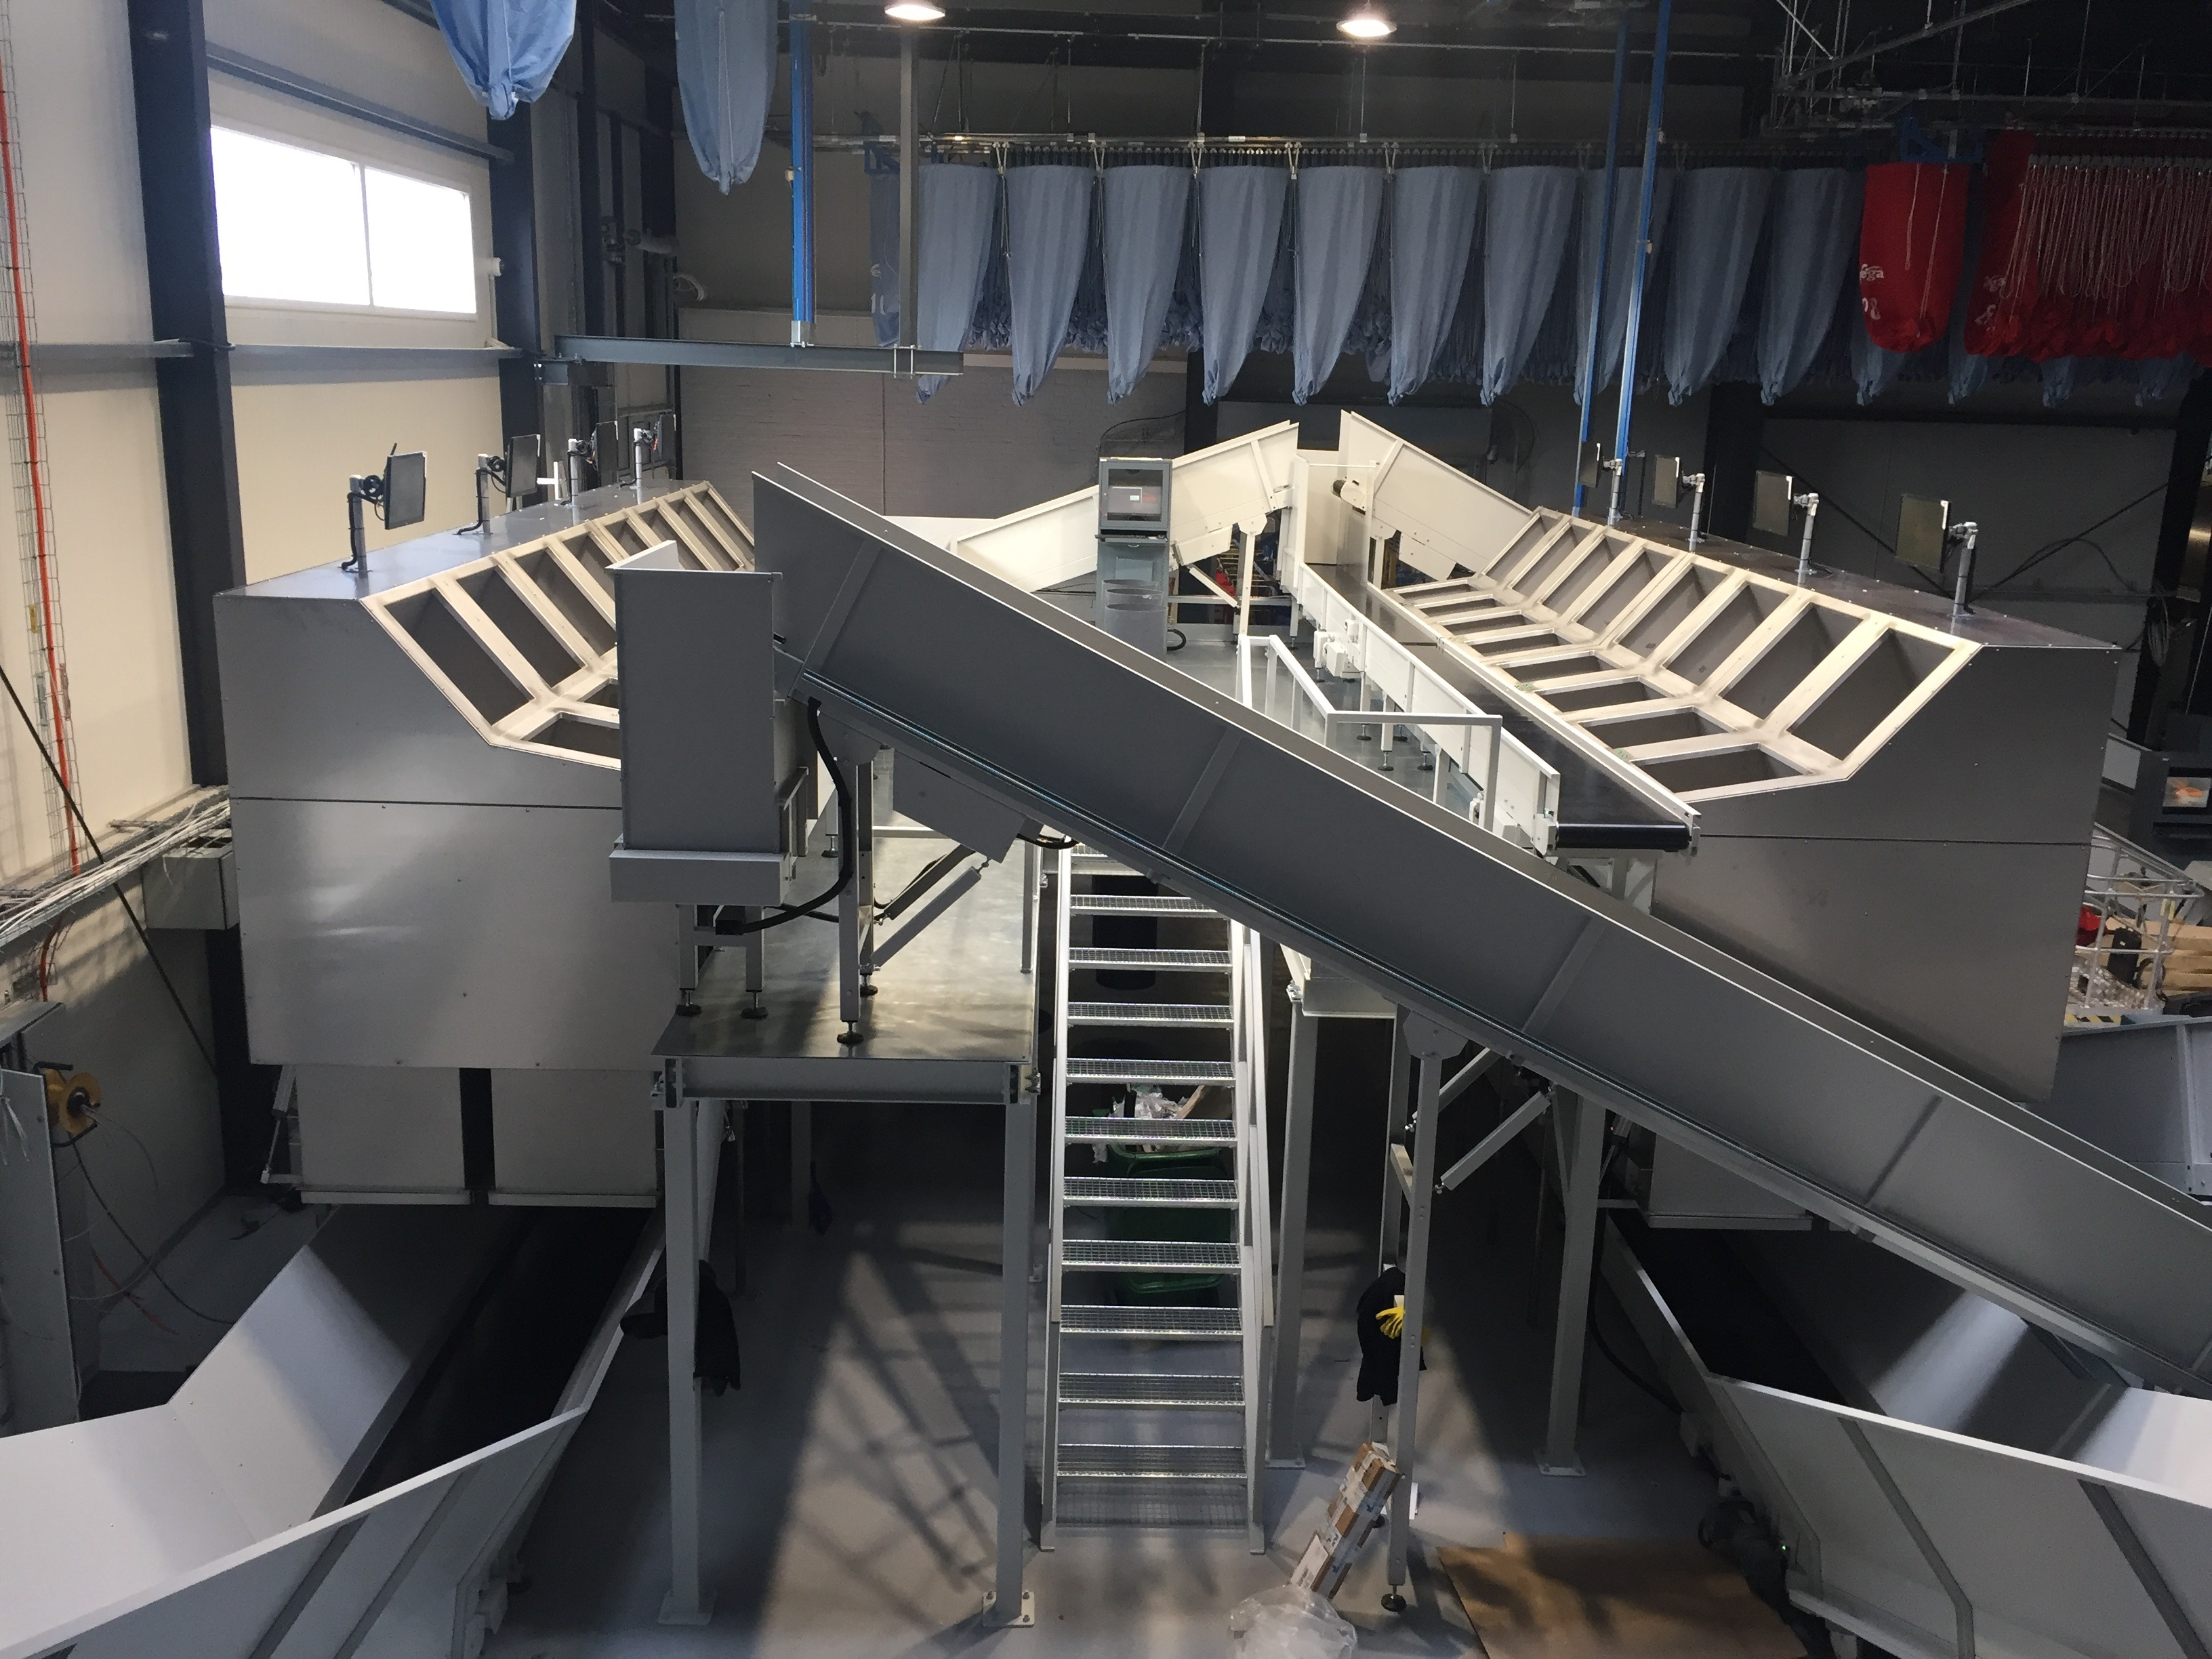 A-Vask expands with D2 and sorting bins